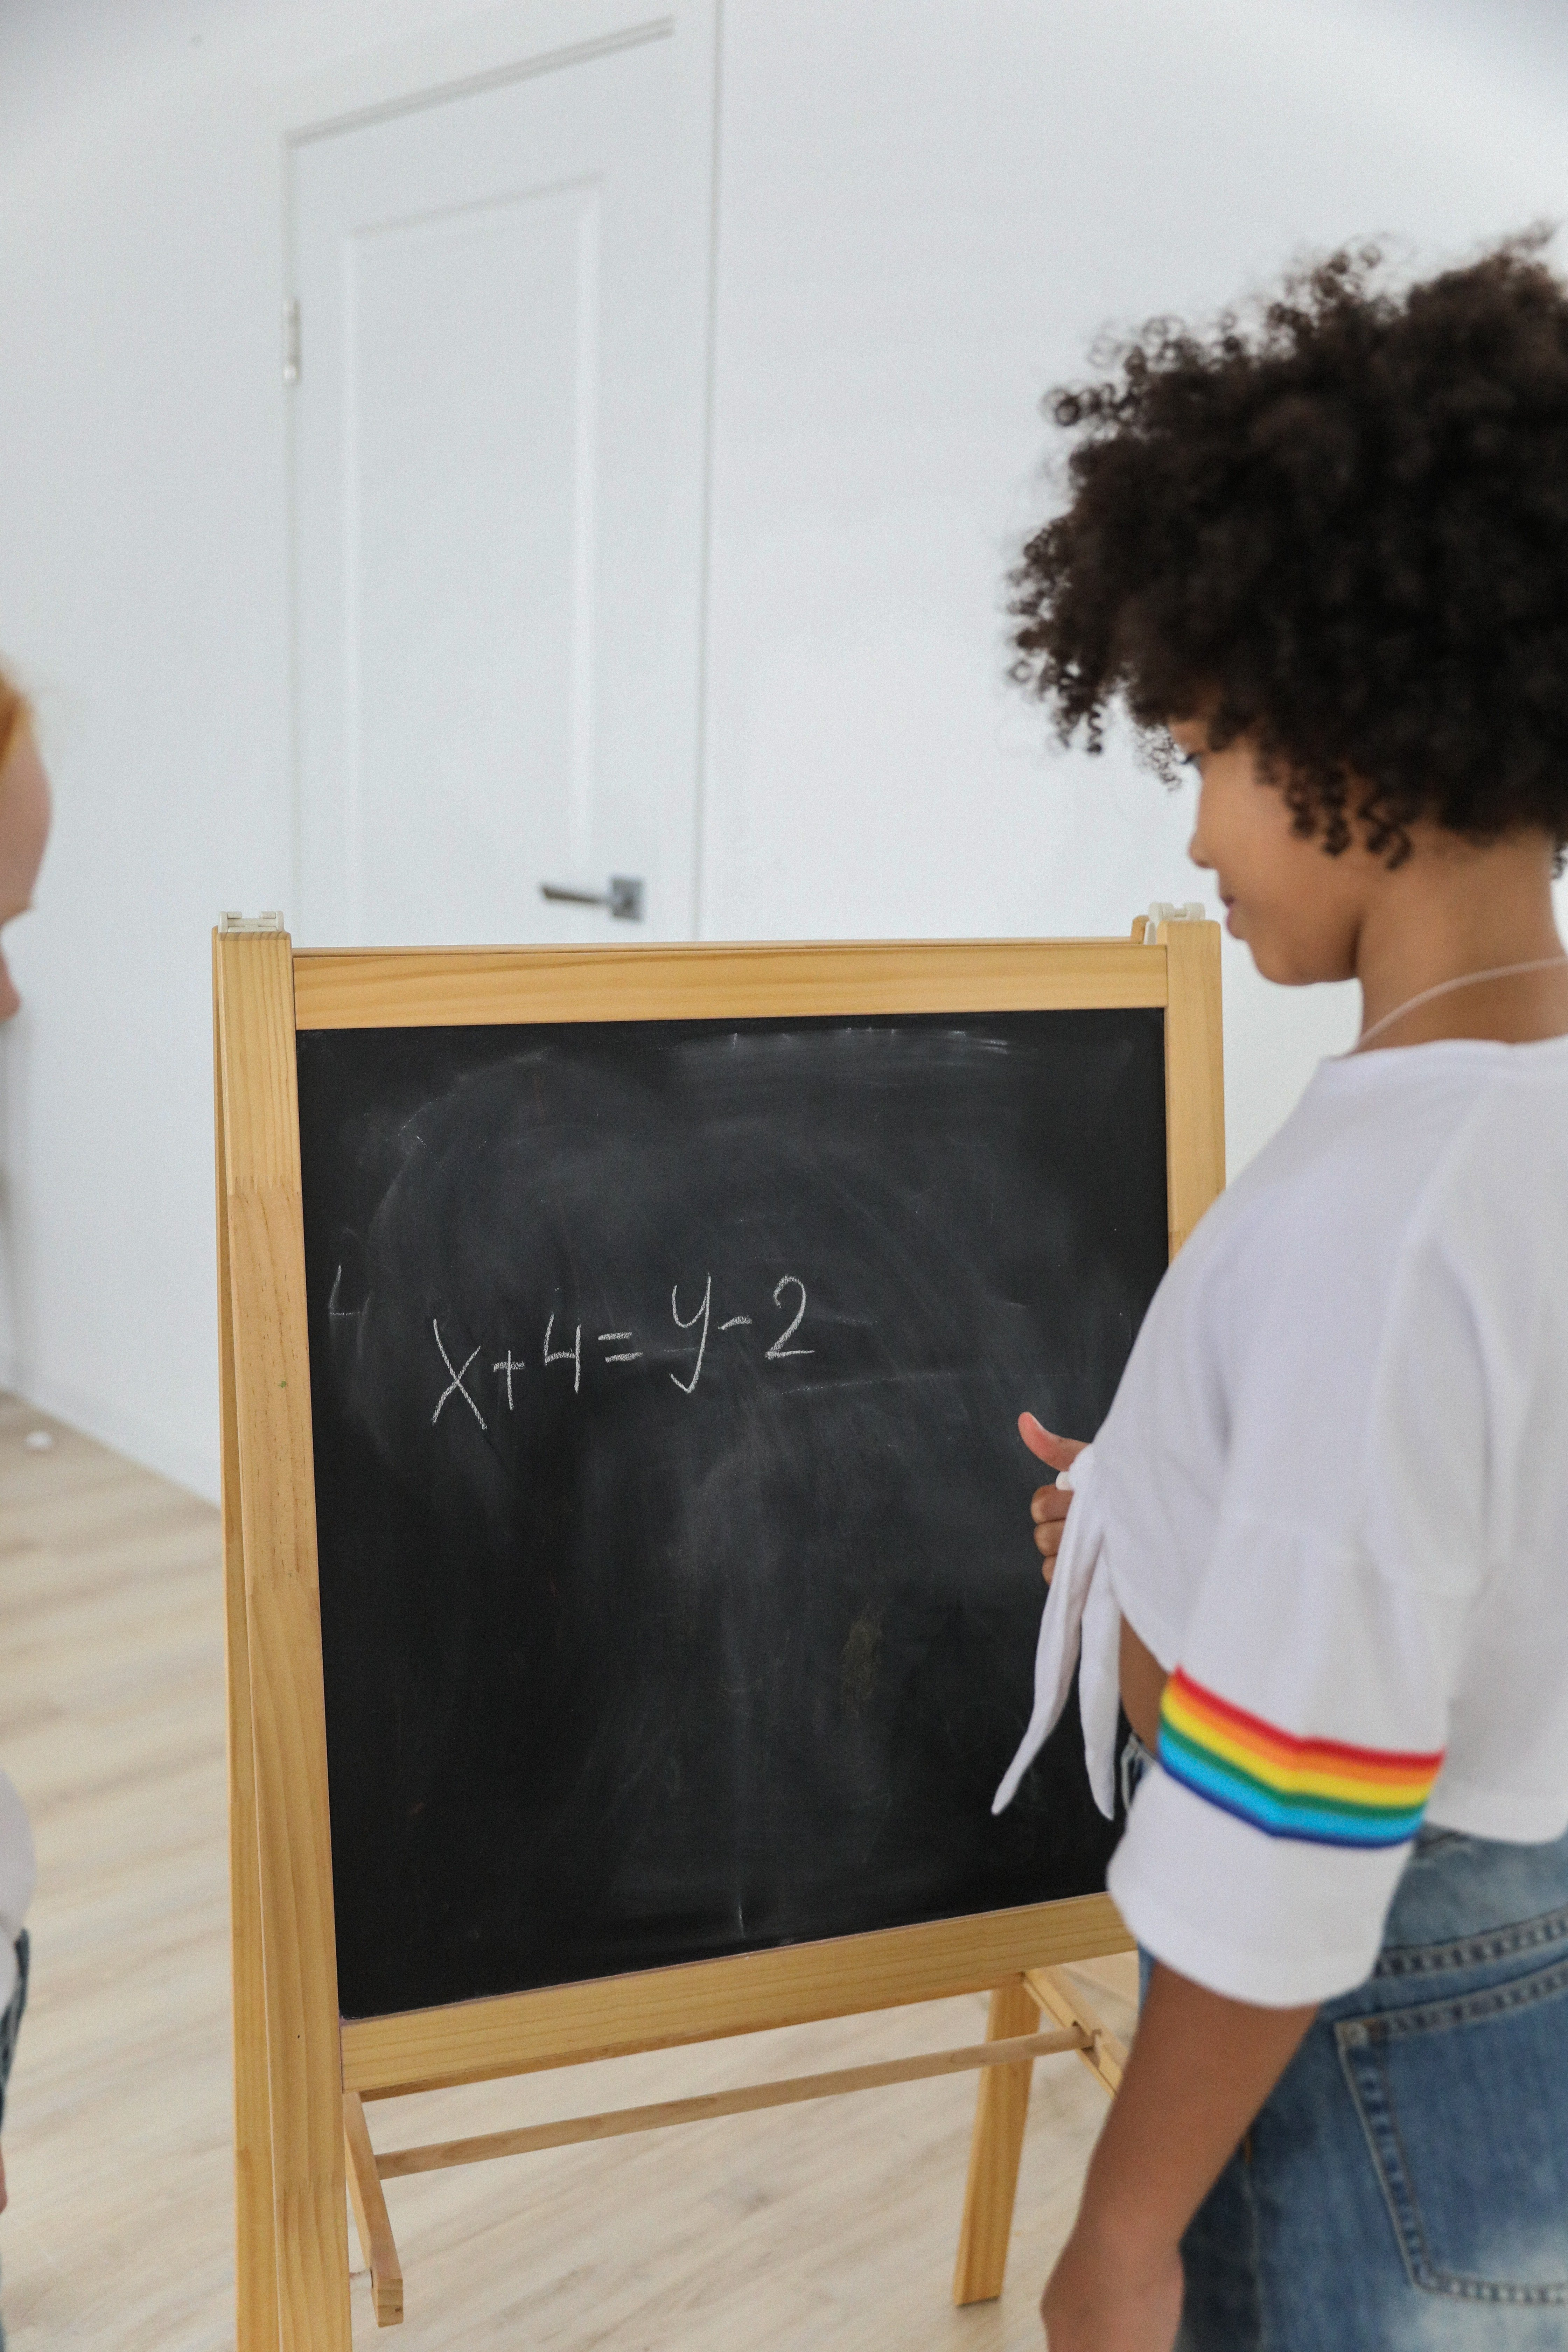 A girl attempts to figure out the equation on the chalkboard in front of her | Photo: Pexels